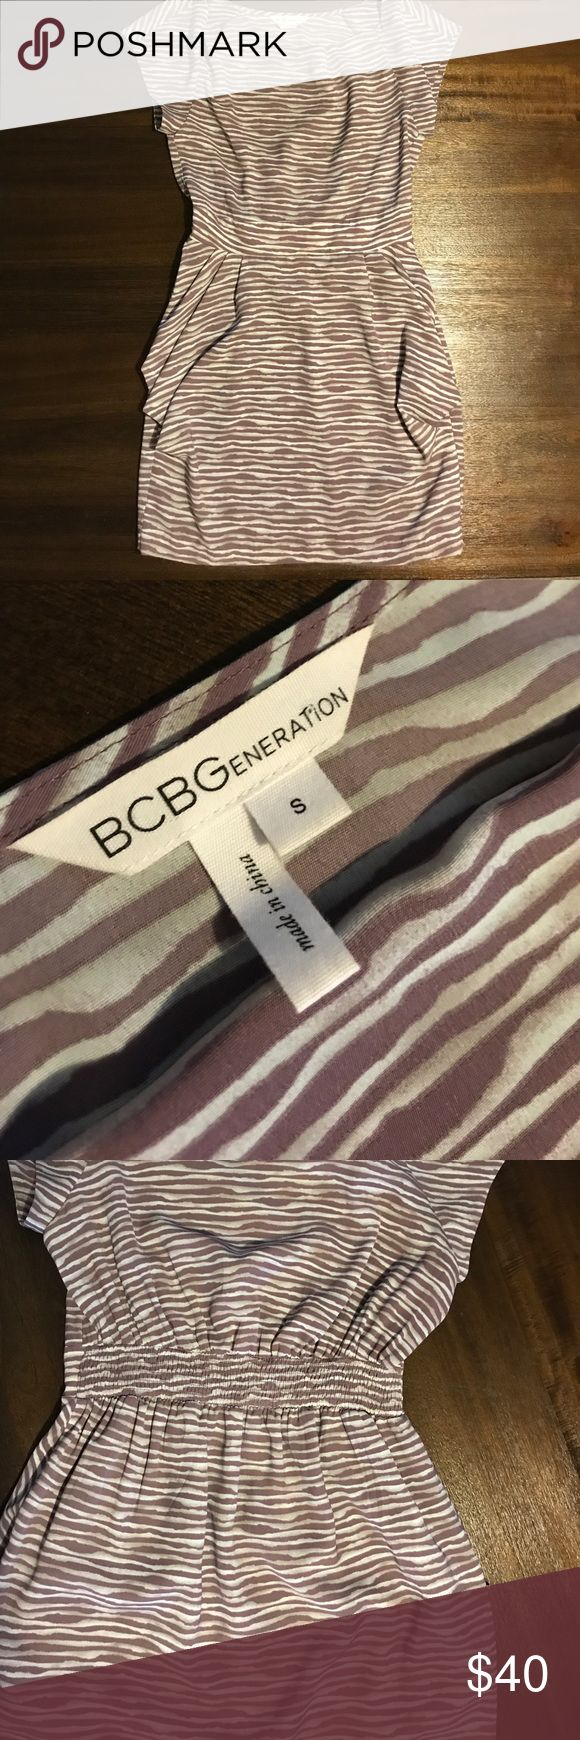 """BCBG Generation dress Perfect spring work dress! Used but looks brand new since I only wore it once length is 33"""" and bust size is 17 . Ill take best offer 🤗 BCBGeneration Dresses Midi"""